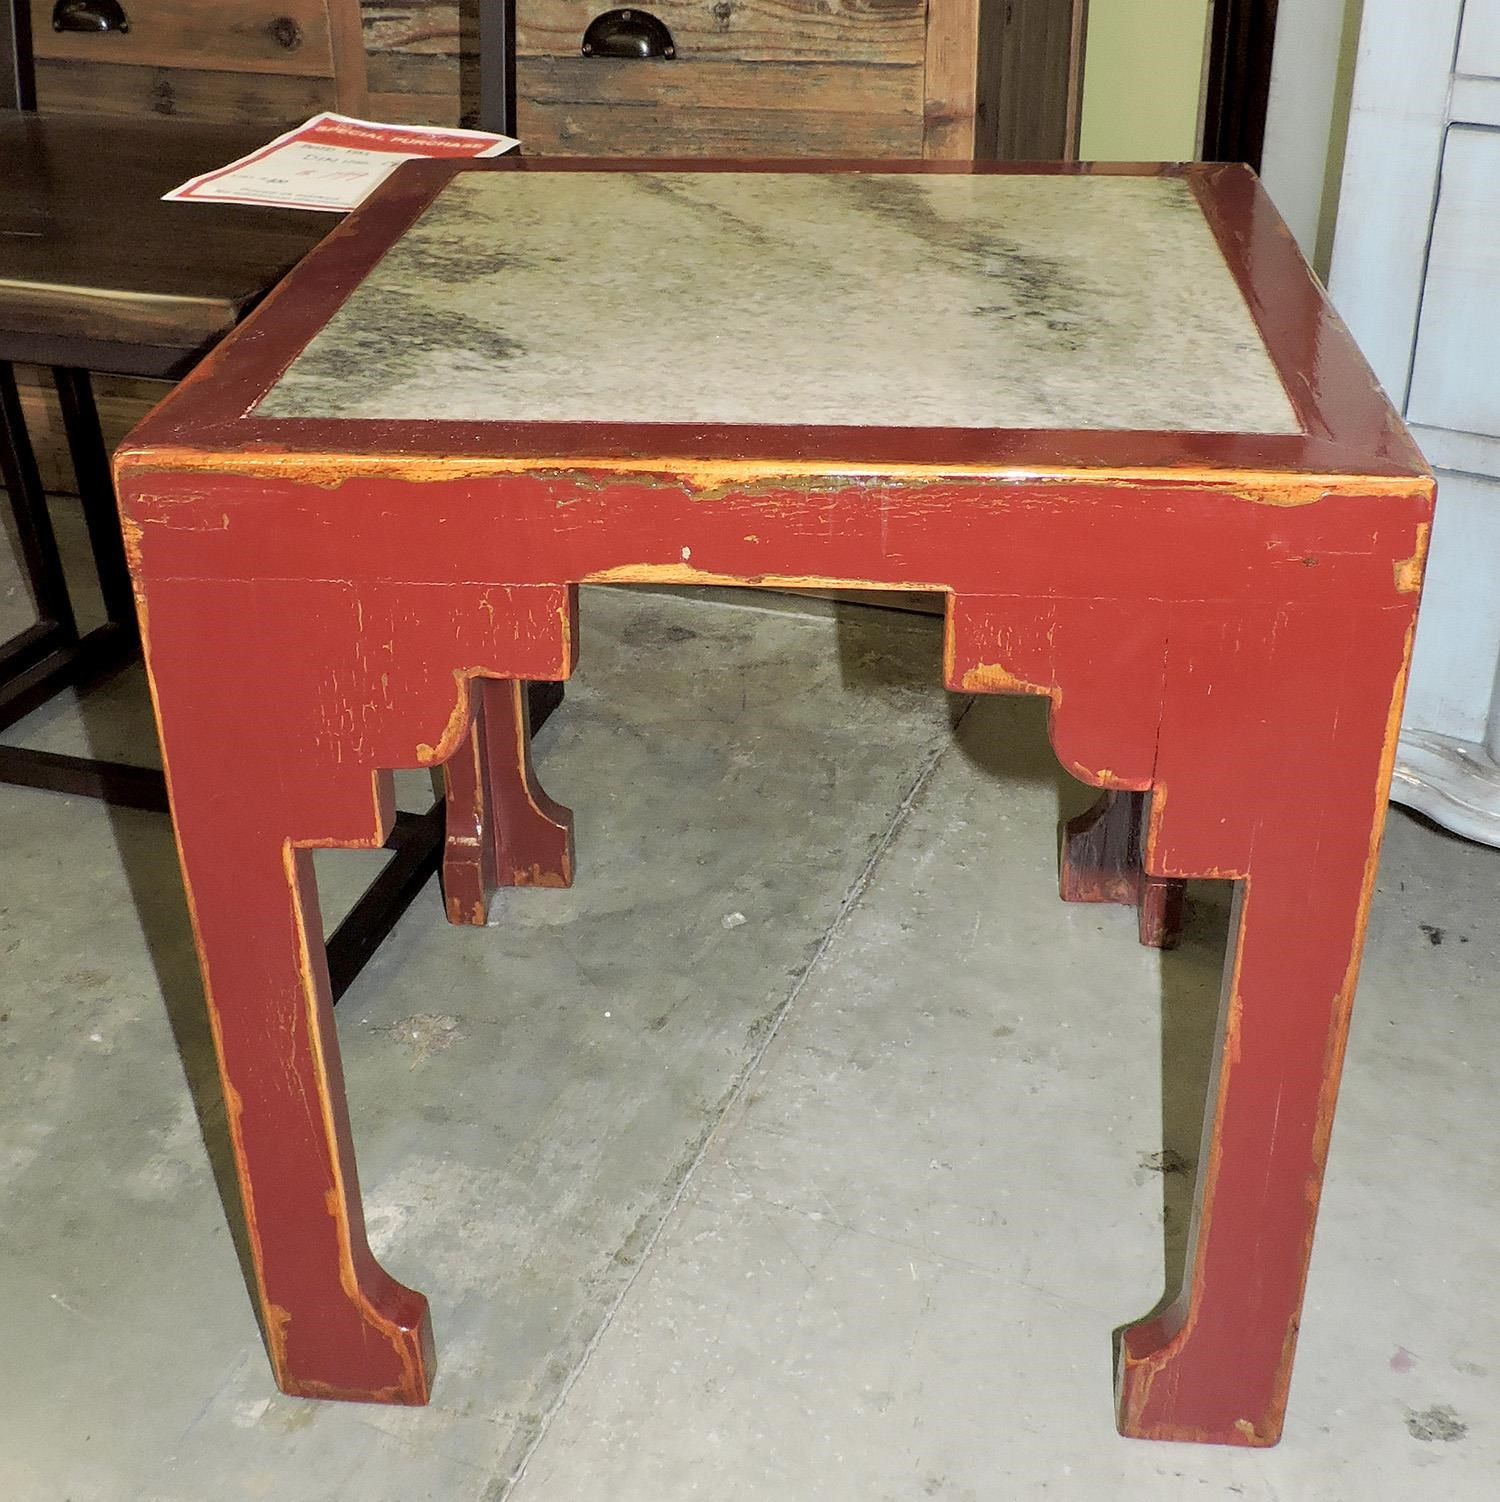 Four Hands Clearance Merlot Accent Table - Item Number: D2SMER431